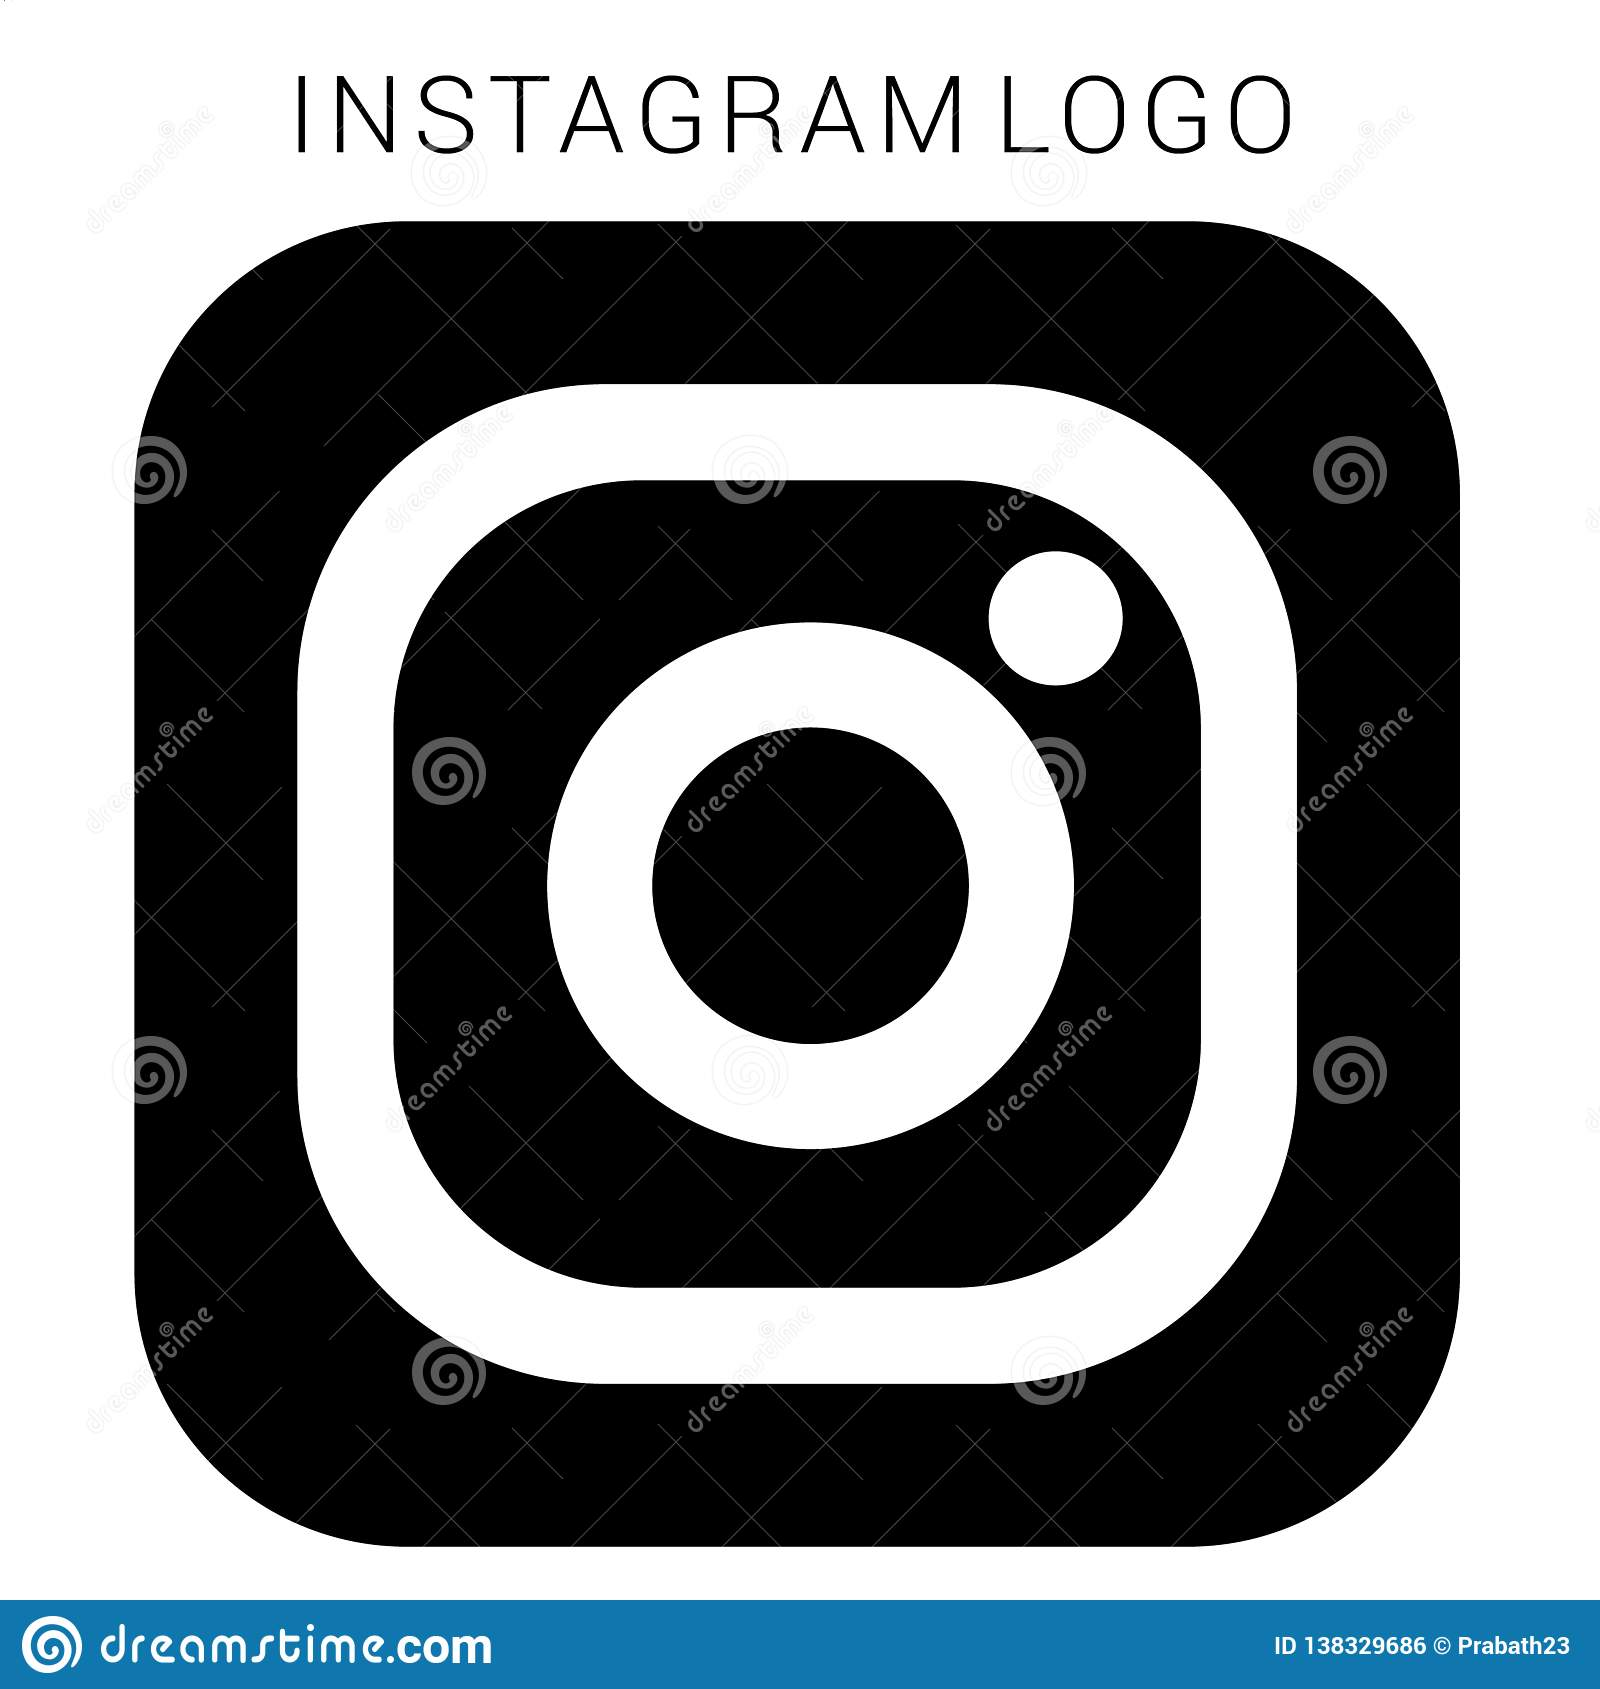 Instagram Logo With Vector Ai File  Squared Black & White